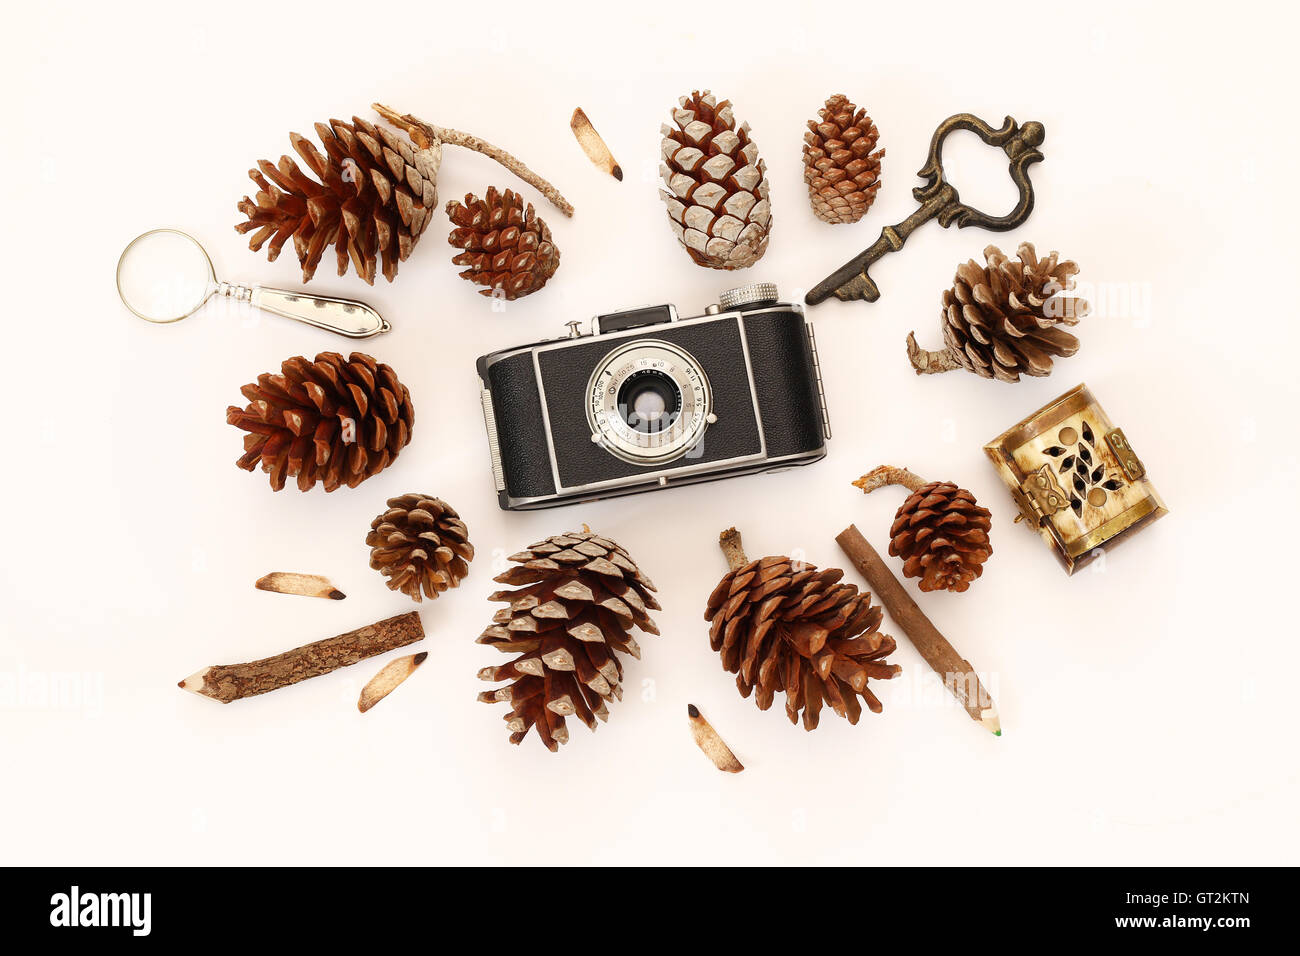 Cones Lens Stock Photos & Cones Lens Stock Images - Alamy